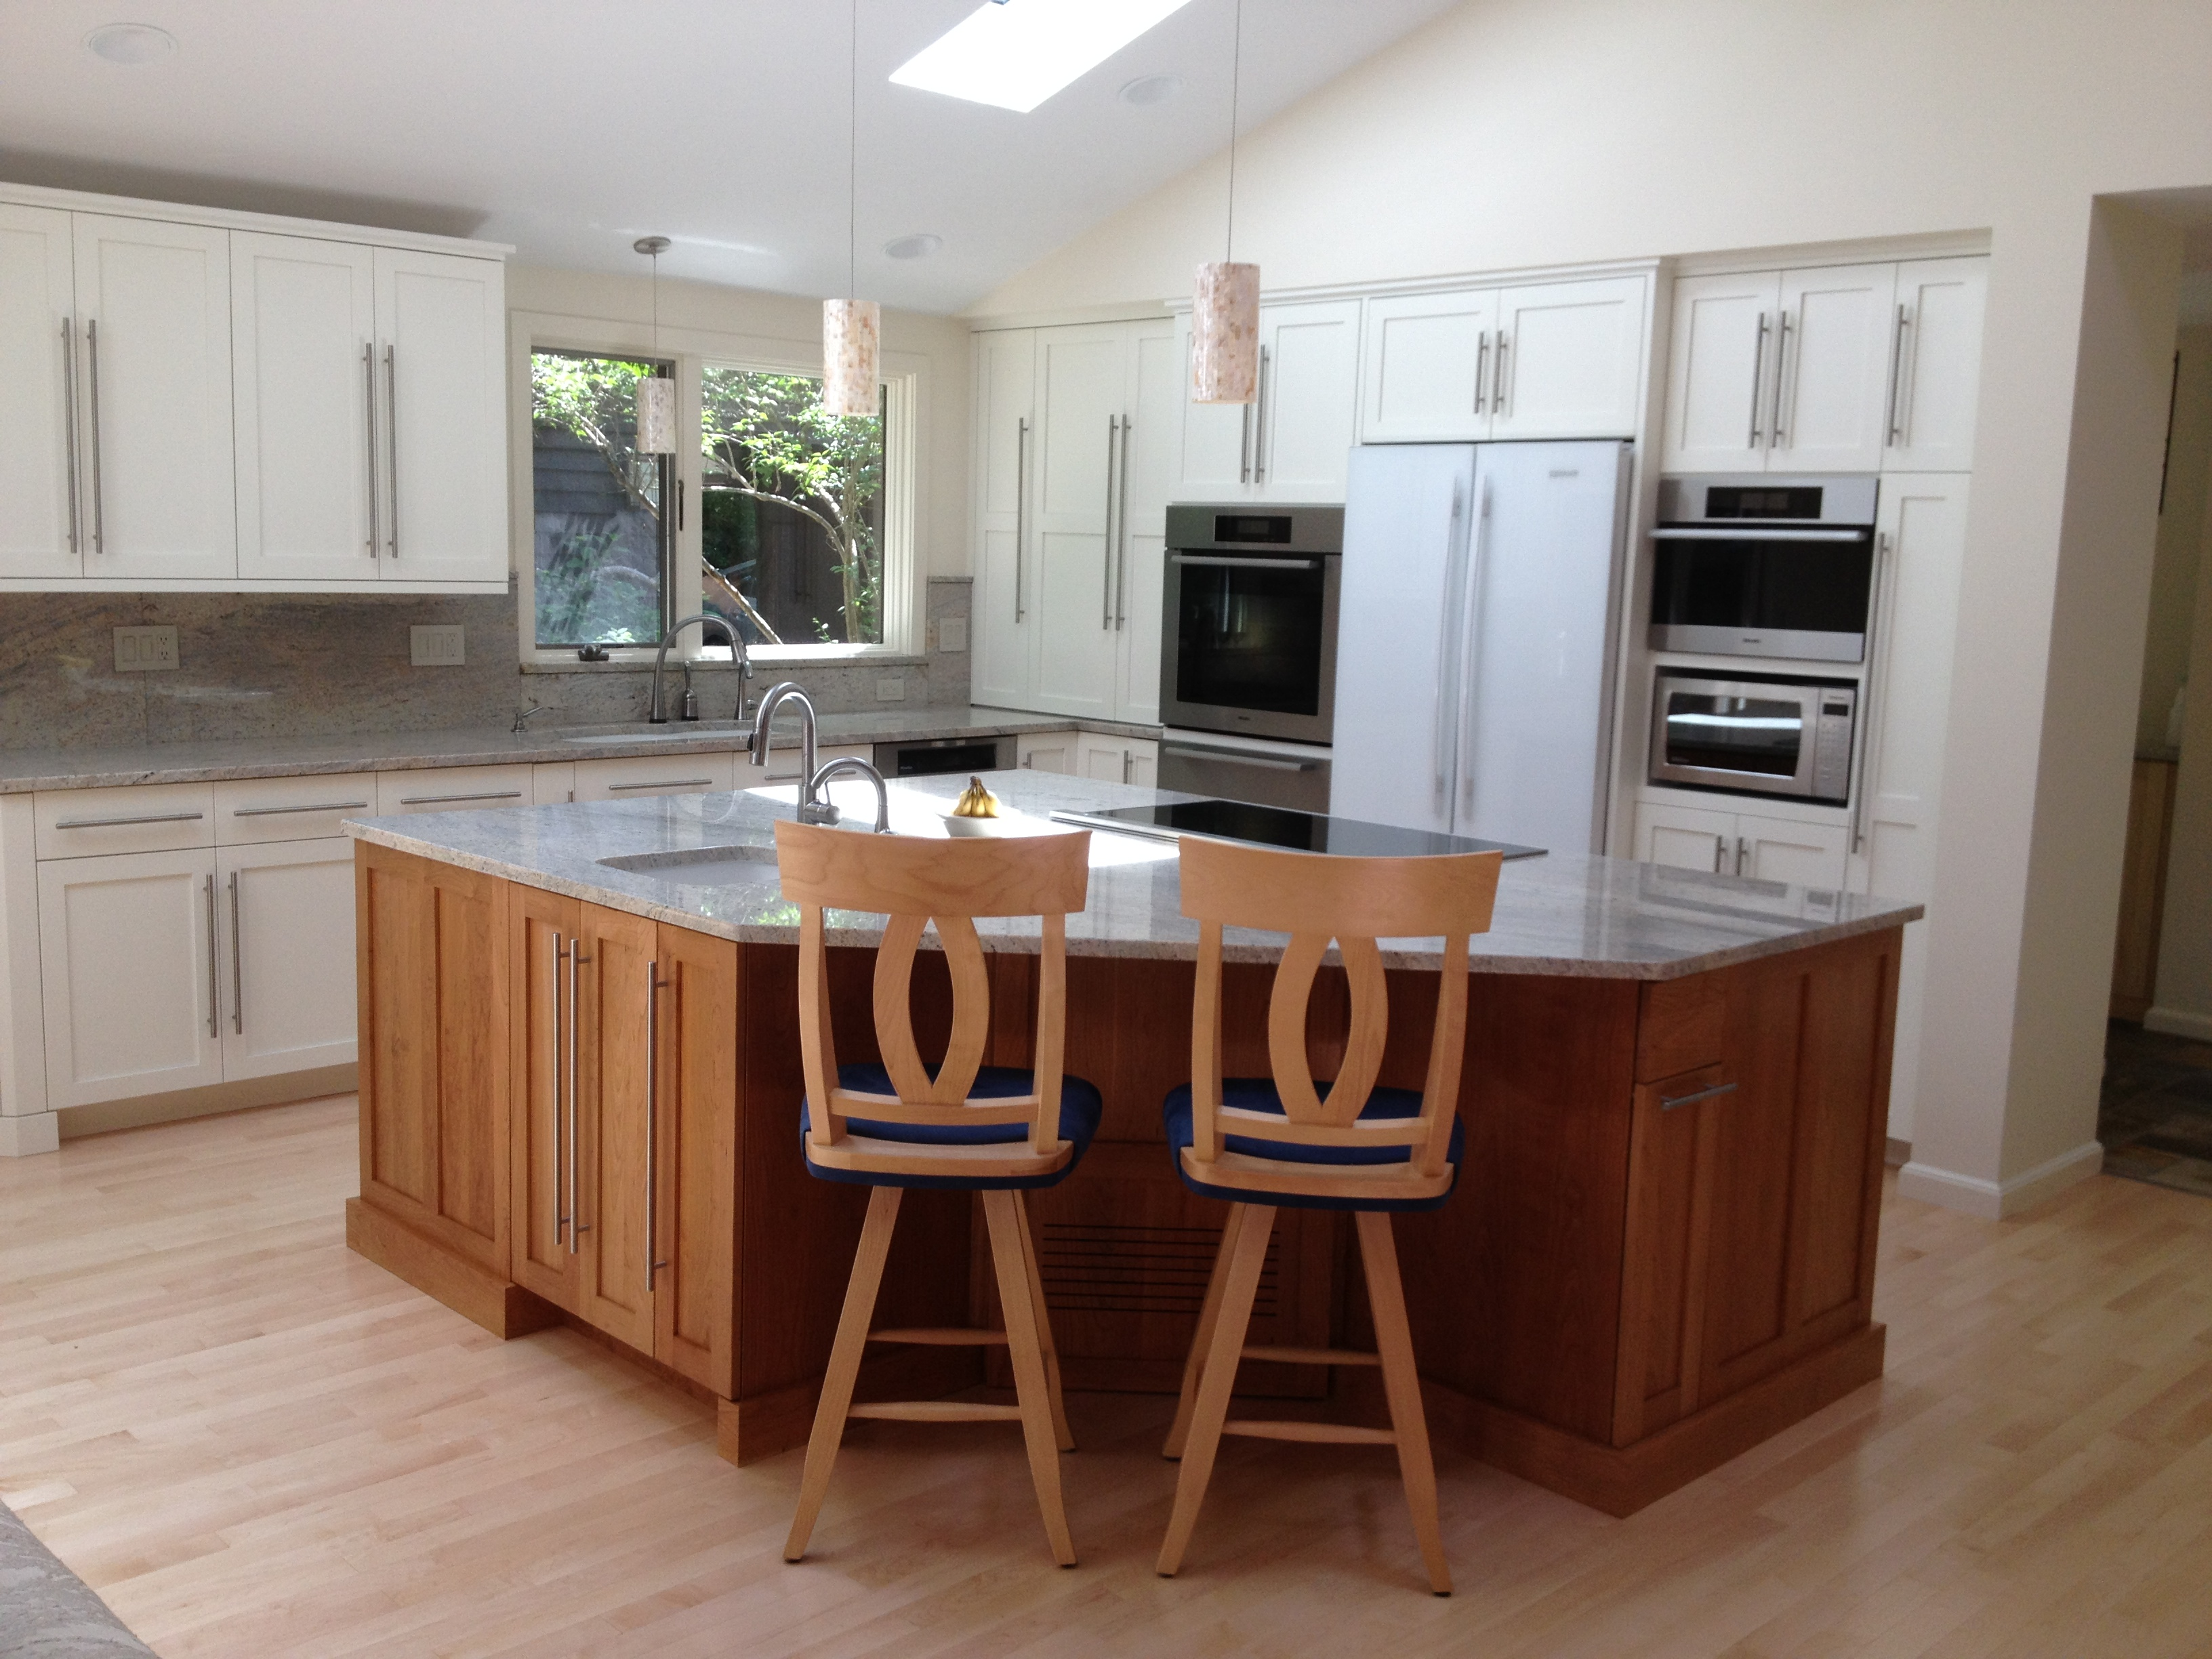 Kitchen Design For Harlow Wood Mansfield Client 28 Images 130 Properties For Sale From